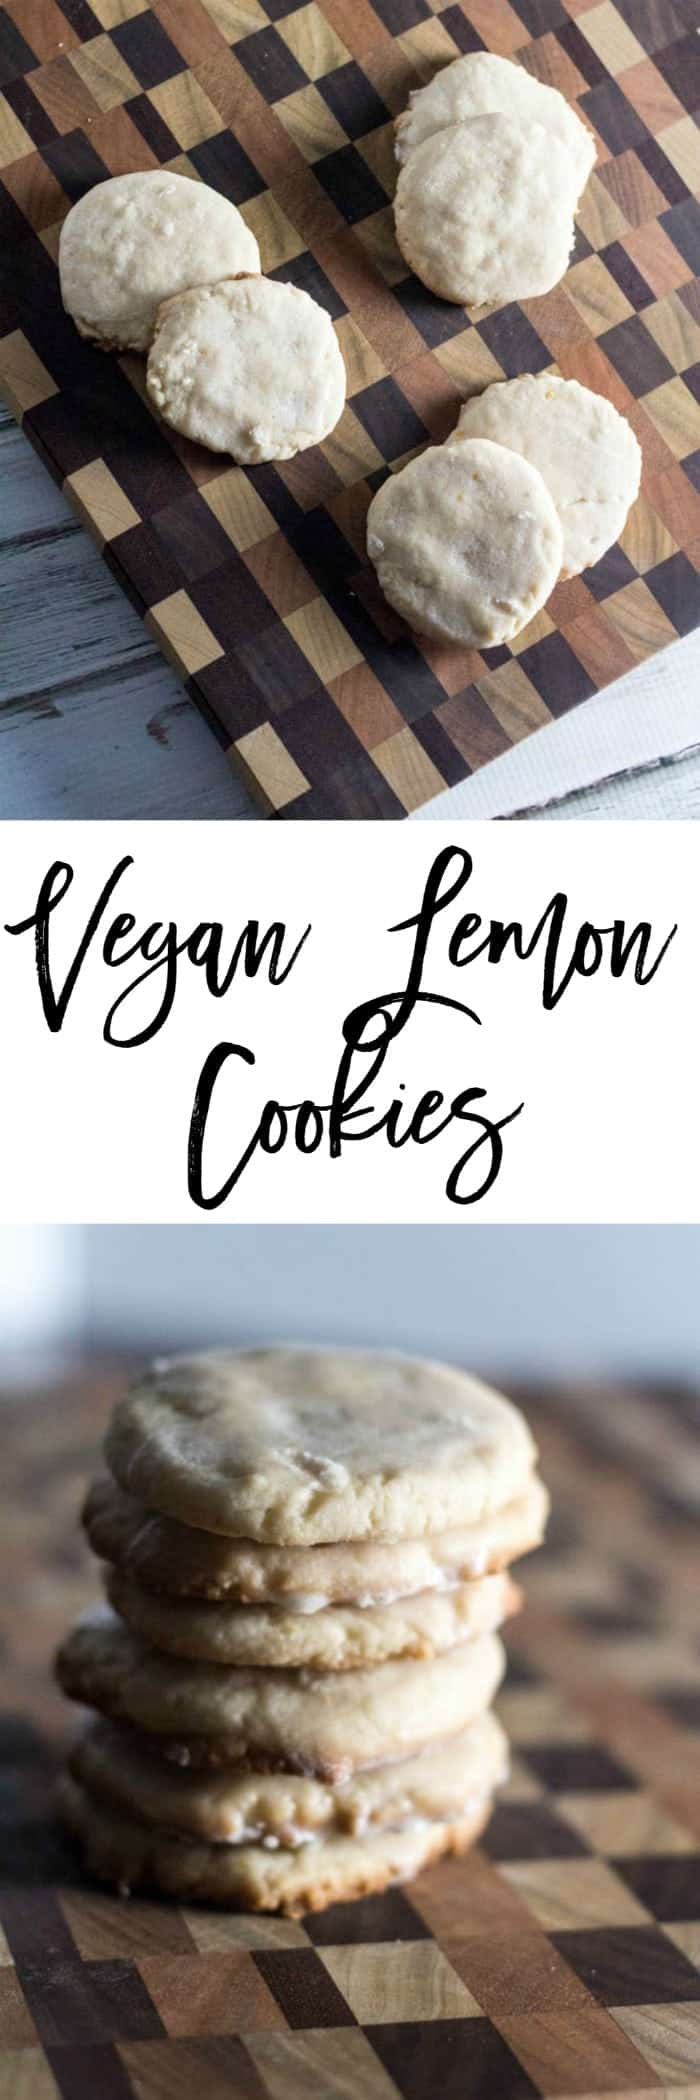 If you have a craving for cookies, try these vegan lemon cookies.  Don't let the word vegan throw you off - it just means there are no eggs in them.  The lemon zest in these cookies adds a freshness to them that you don't expect and a flavor that is unmatched in any other cookie.  Come and try them for yourself!